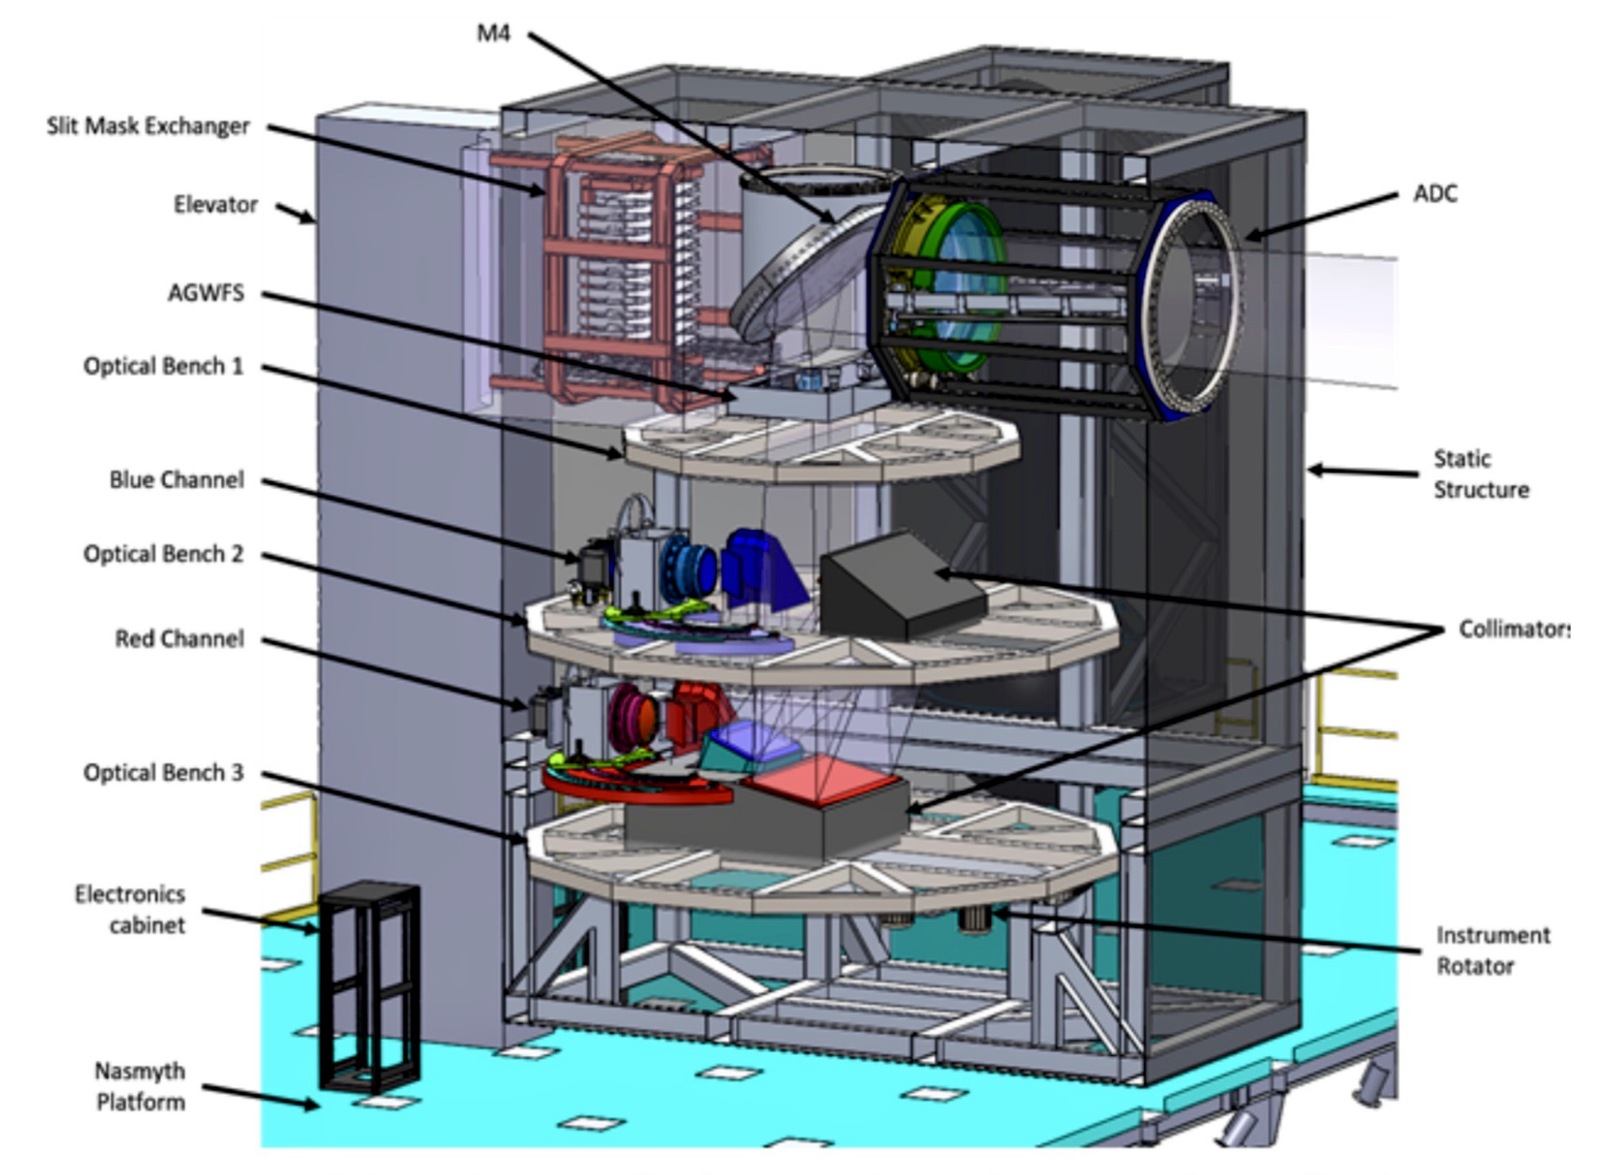 Detailed cross-sectional view of the WFOS Instrument